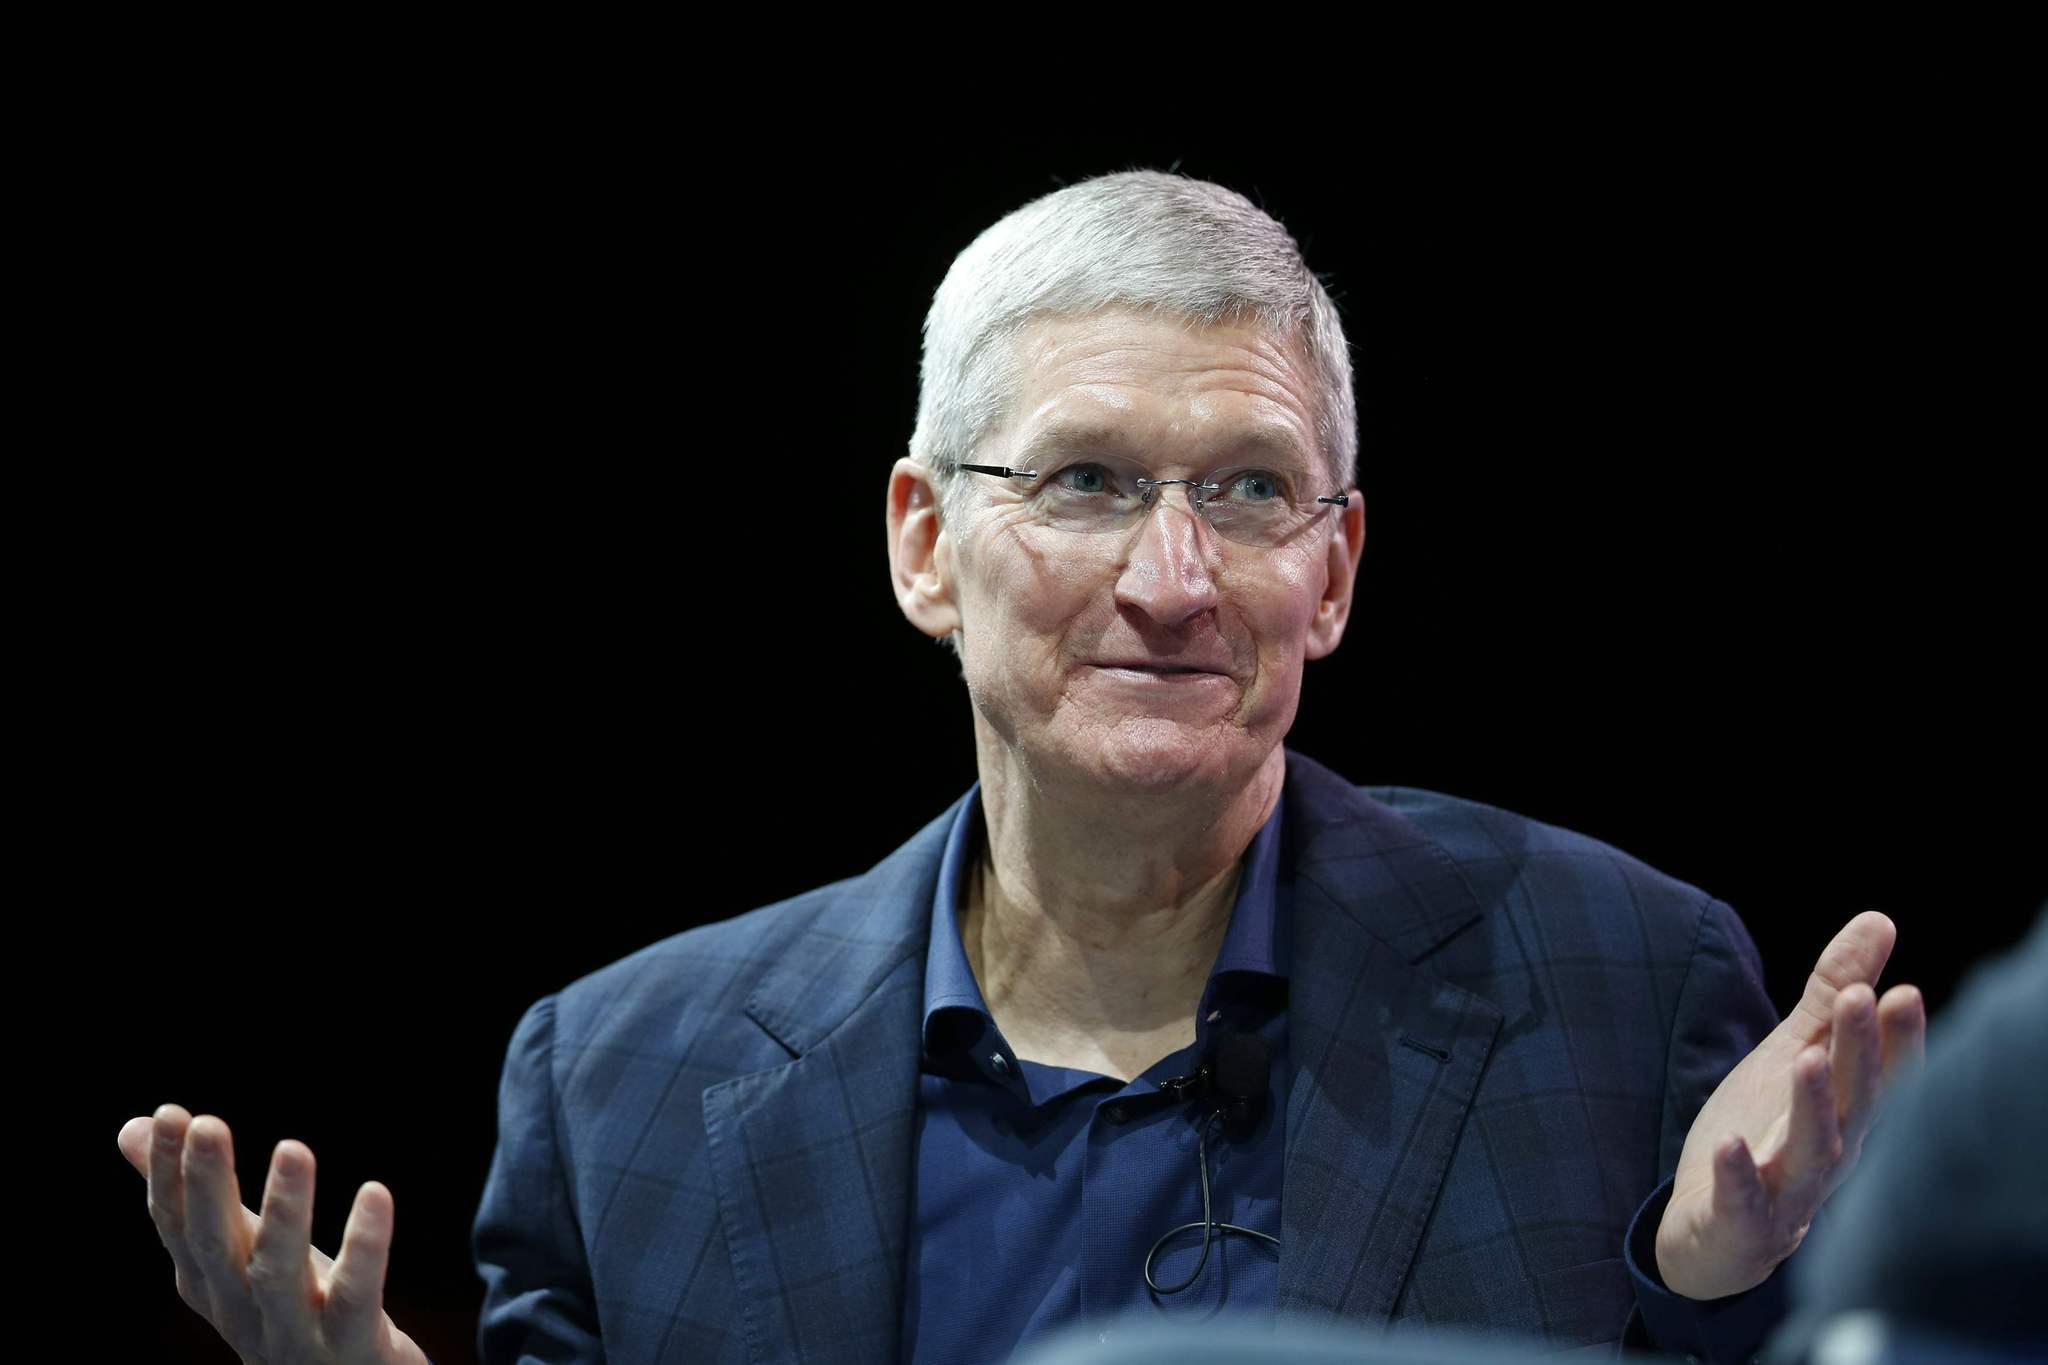 Apple's Tim Cook says he is 'proud to be gay'